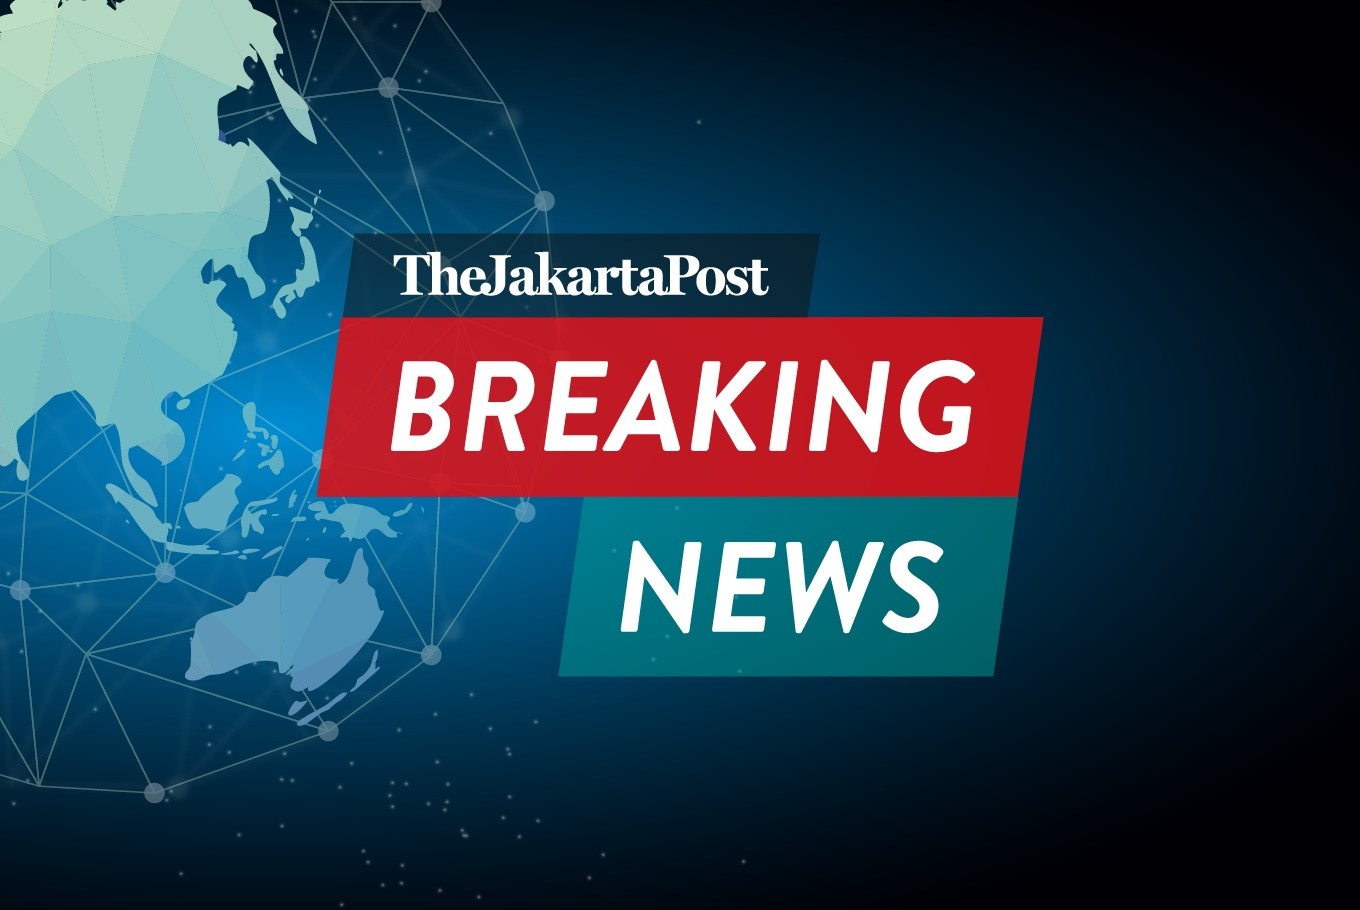 Tsunami warning issued after powerful 6.8 quake hits off Indonesia's Sulawesi island